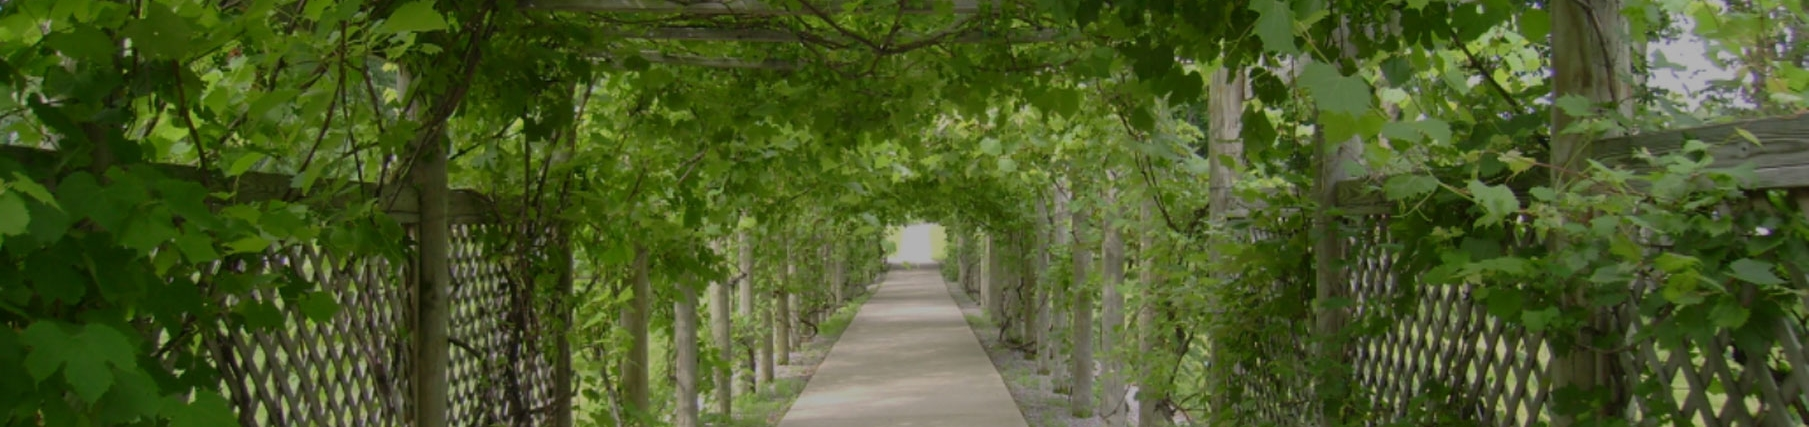 Grape arbor located at Notre Dame of Elm Grove, Elm Grove, Wisconsin